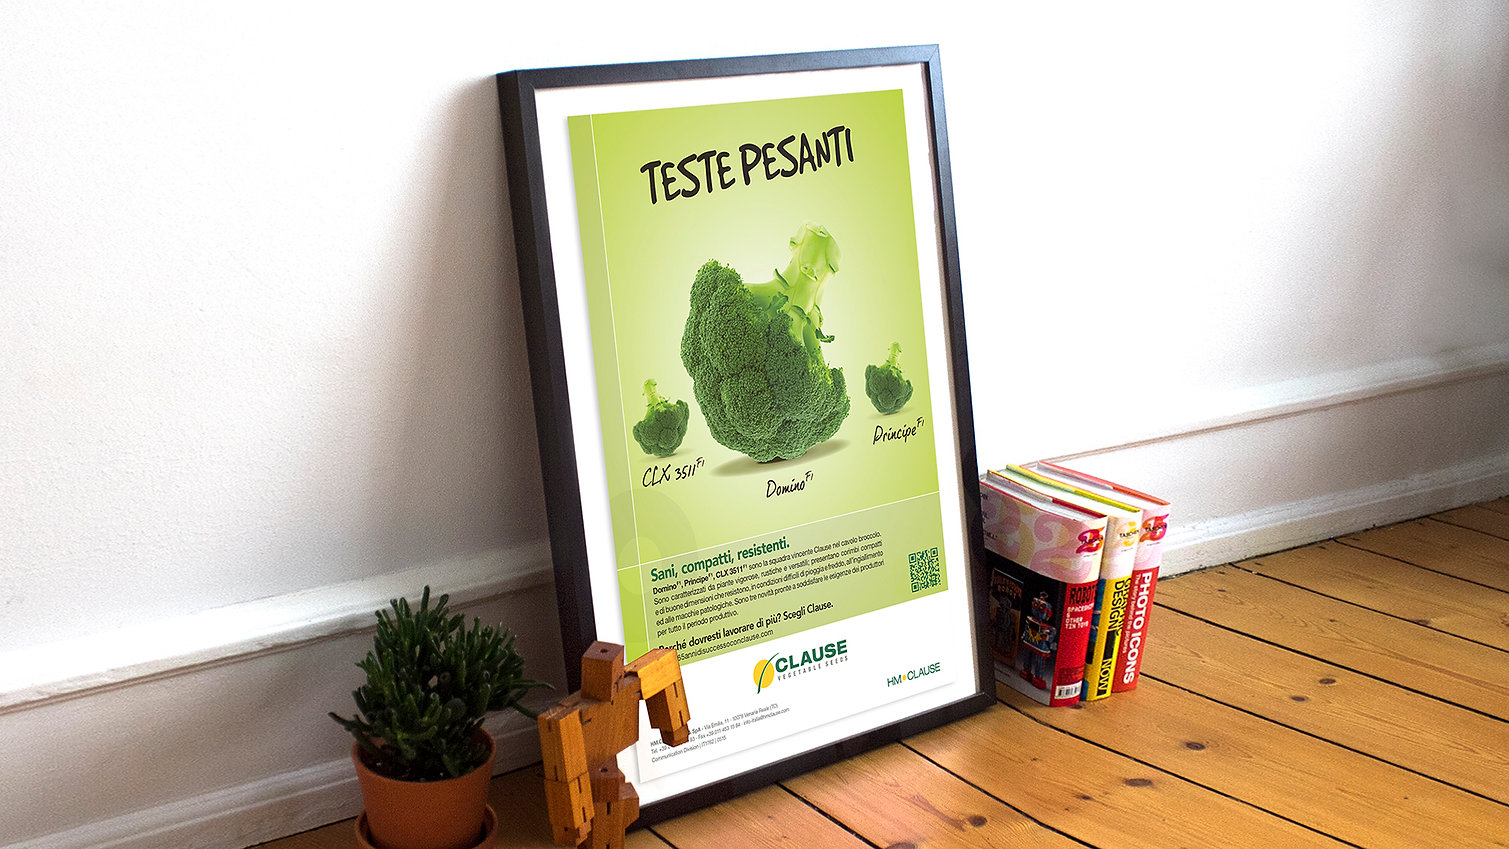 CLAUSE - Broccoli Poster.jpg